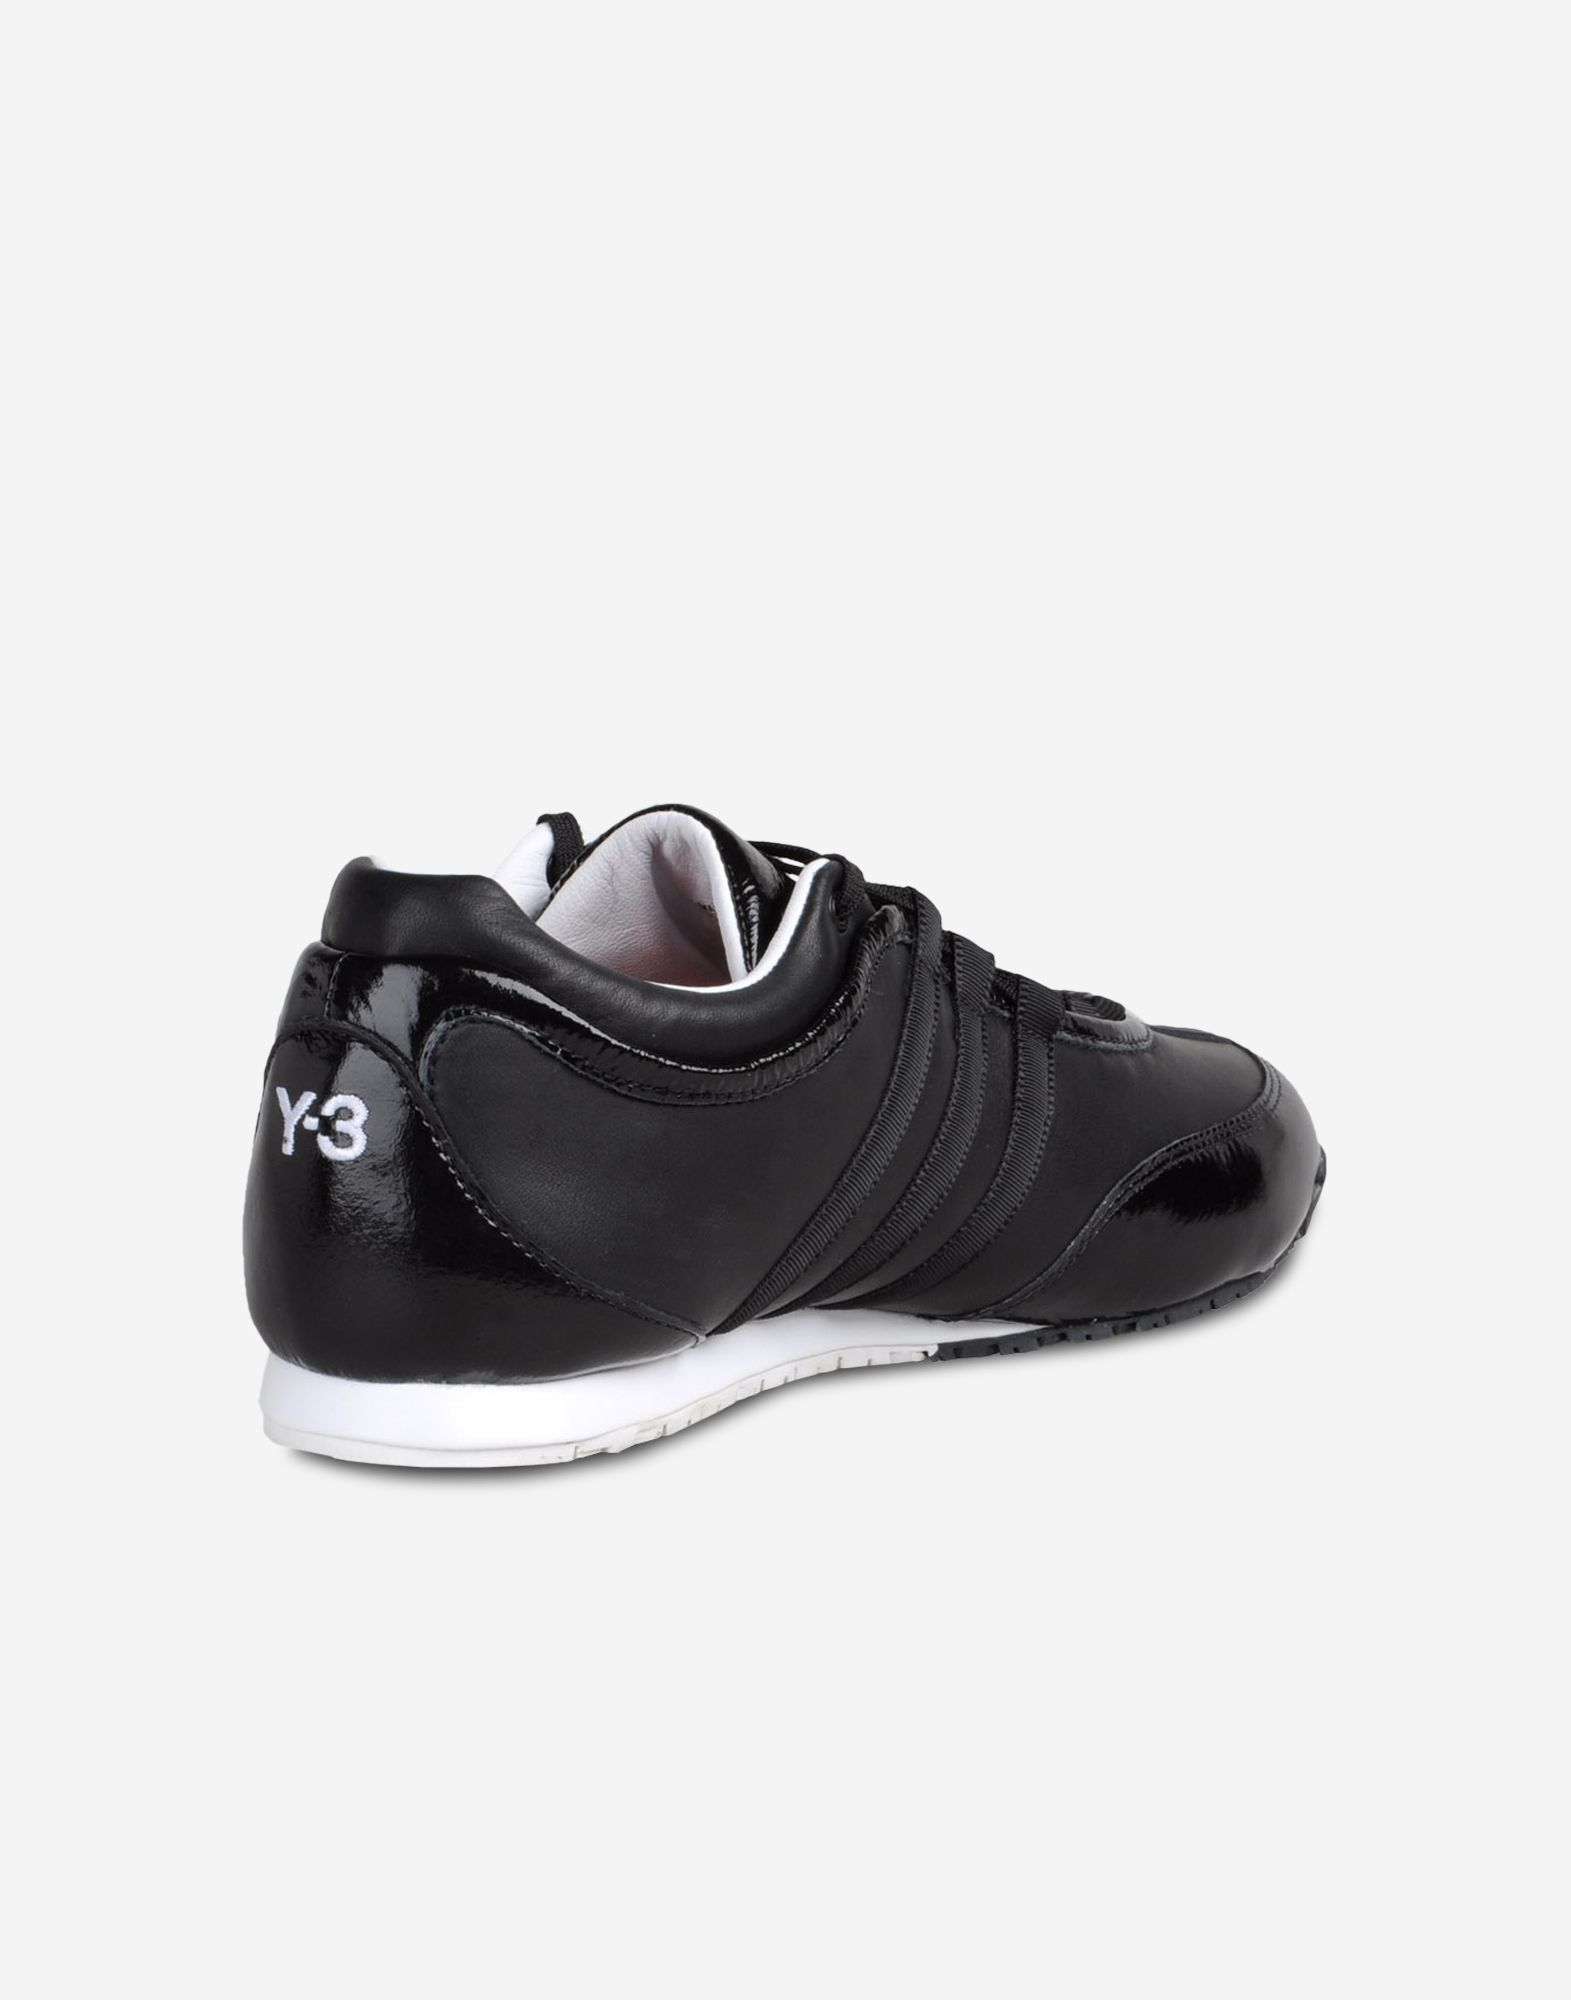 adidas Y 3 Boxing Classic | Style: Shoes | Adidas sneakers